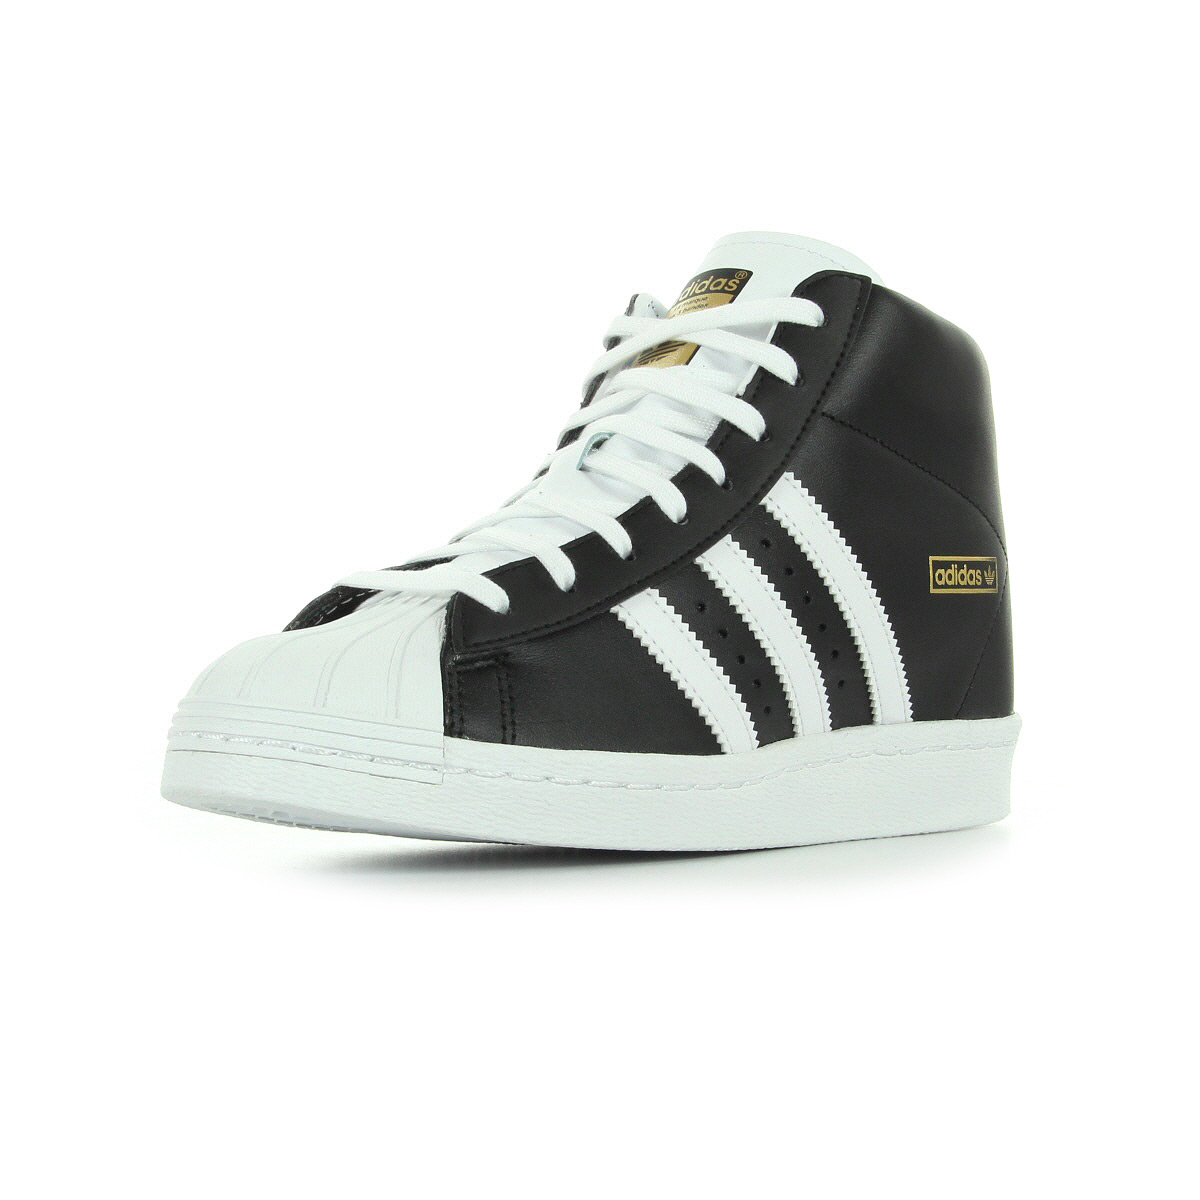 adidas superstar up m19512 baskets mode femme. Black Bedroom Furniture Sets. Home Design Ideas